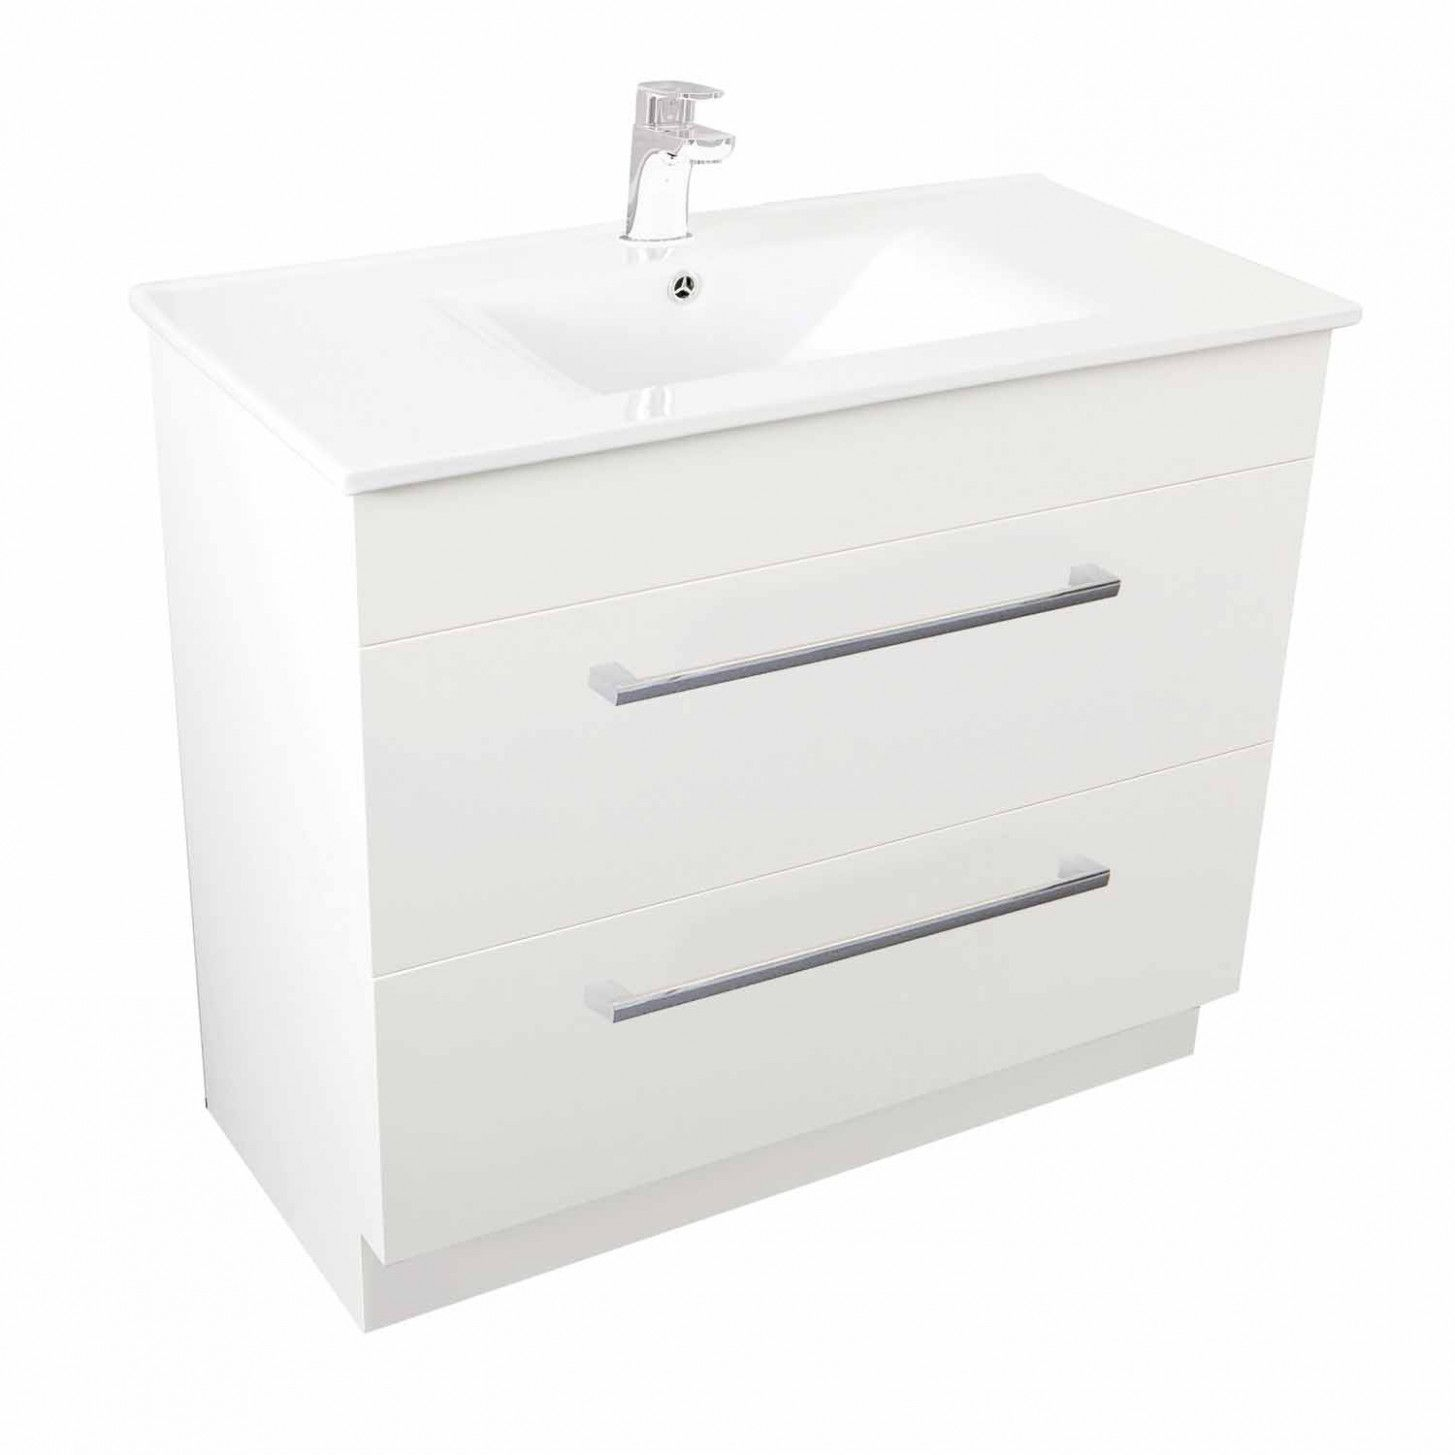 10 Bathroom Furniture New Zealand 10 Bathroom Furniture New